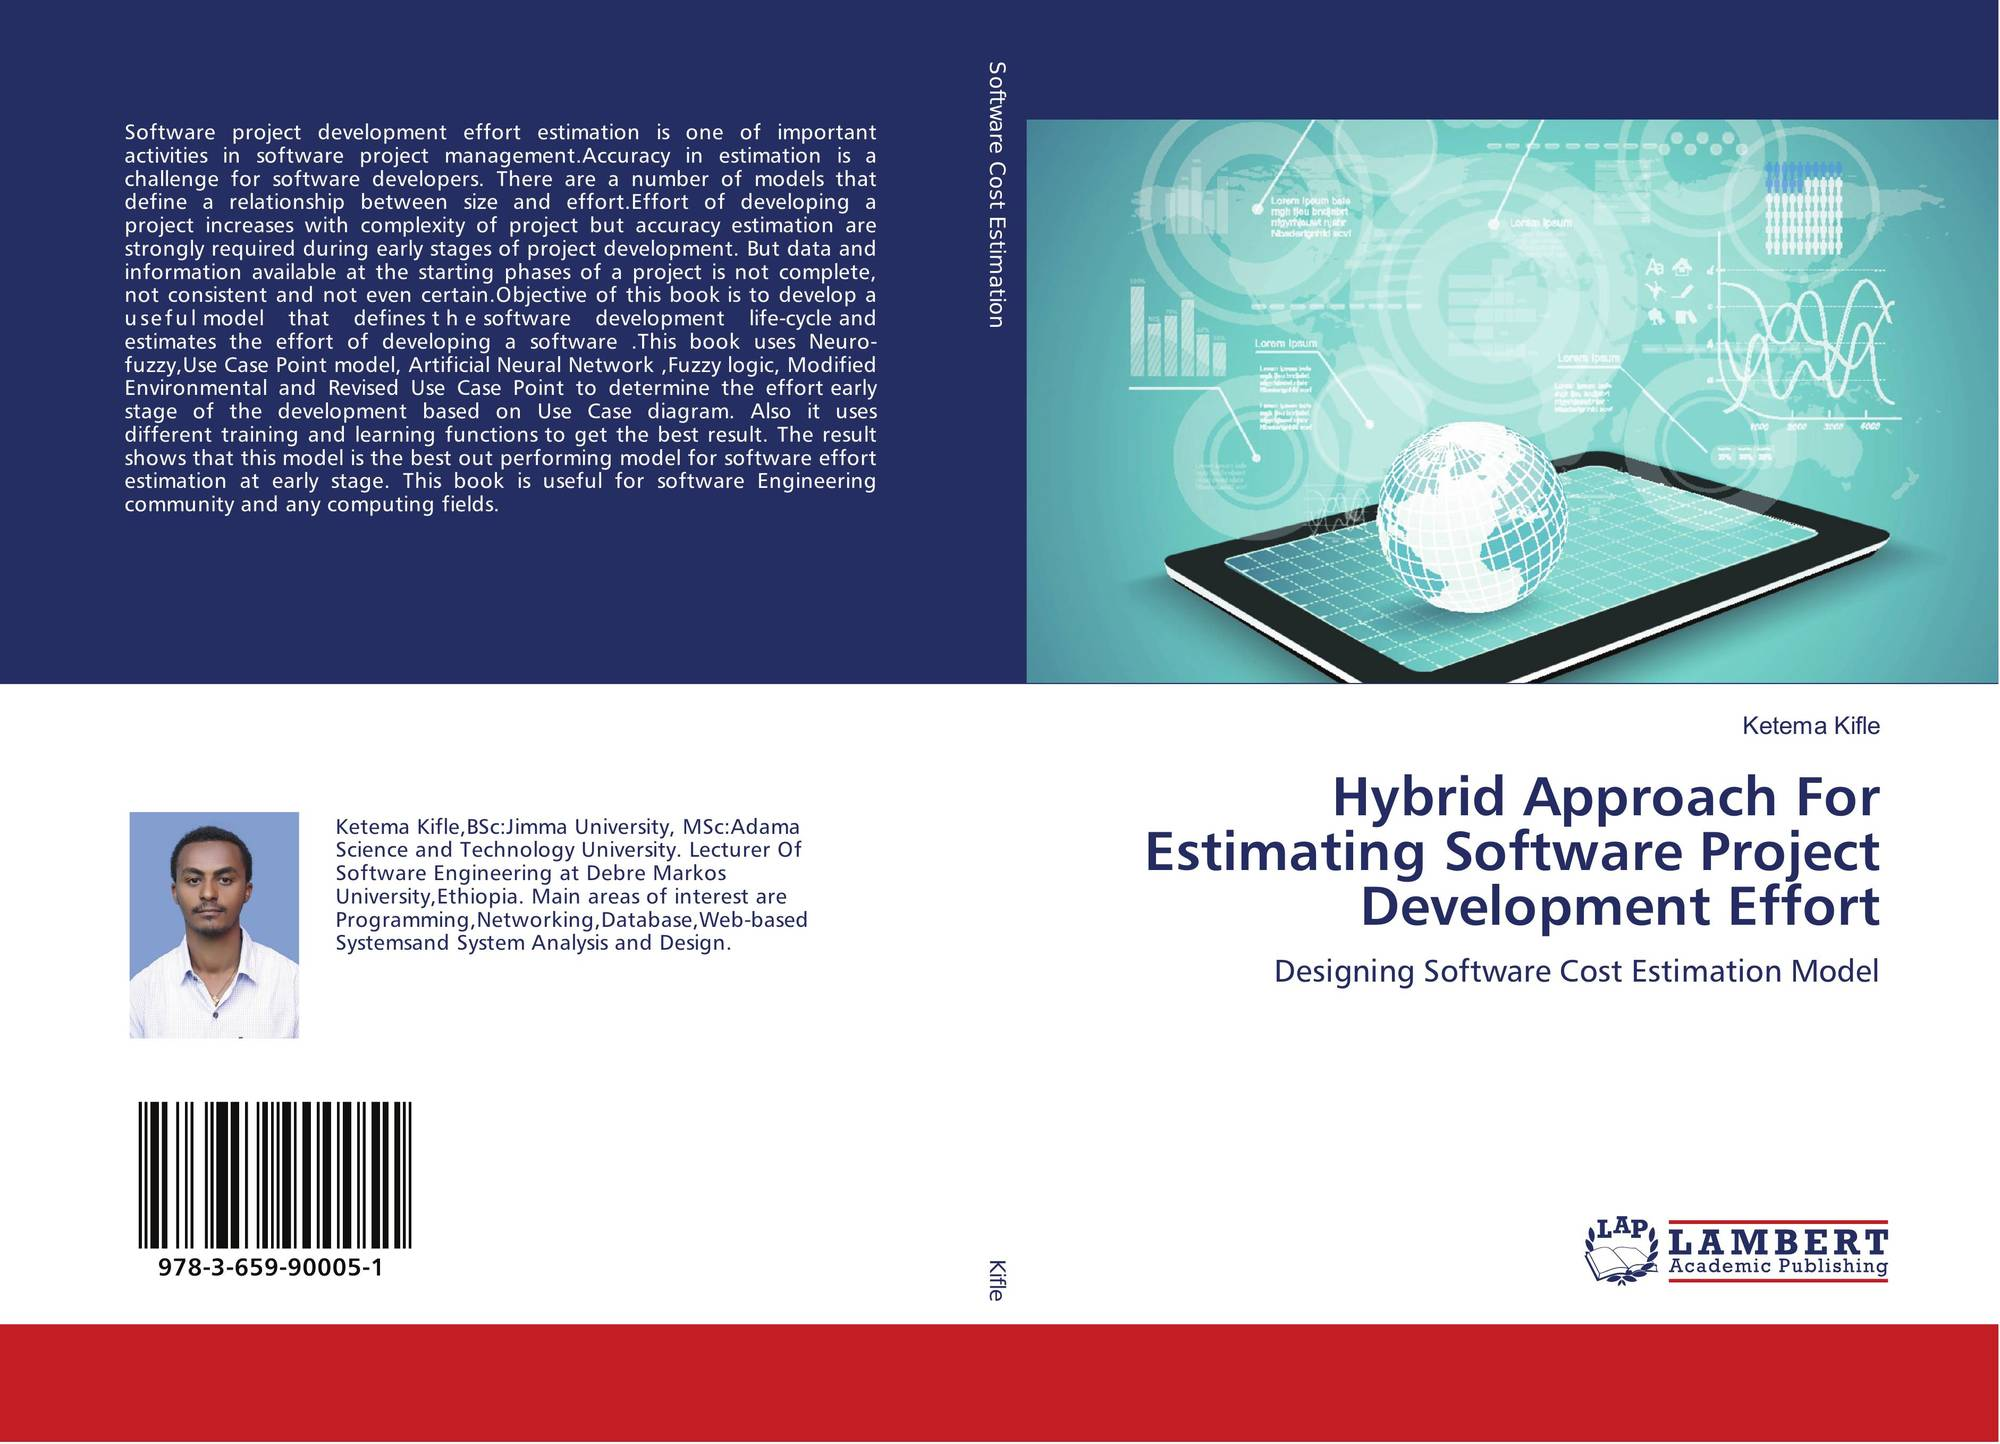 Hybrid Approach For Estimating Software Project Development Effort 978 3 659 90005 1 3659900052 9783659900051 By Ketema Kifle